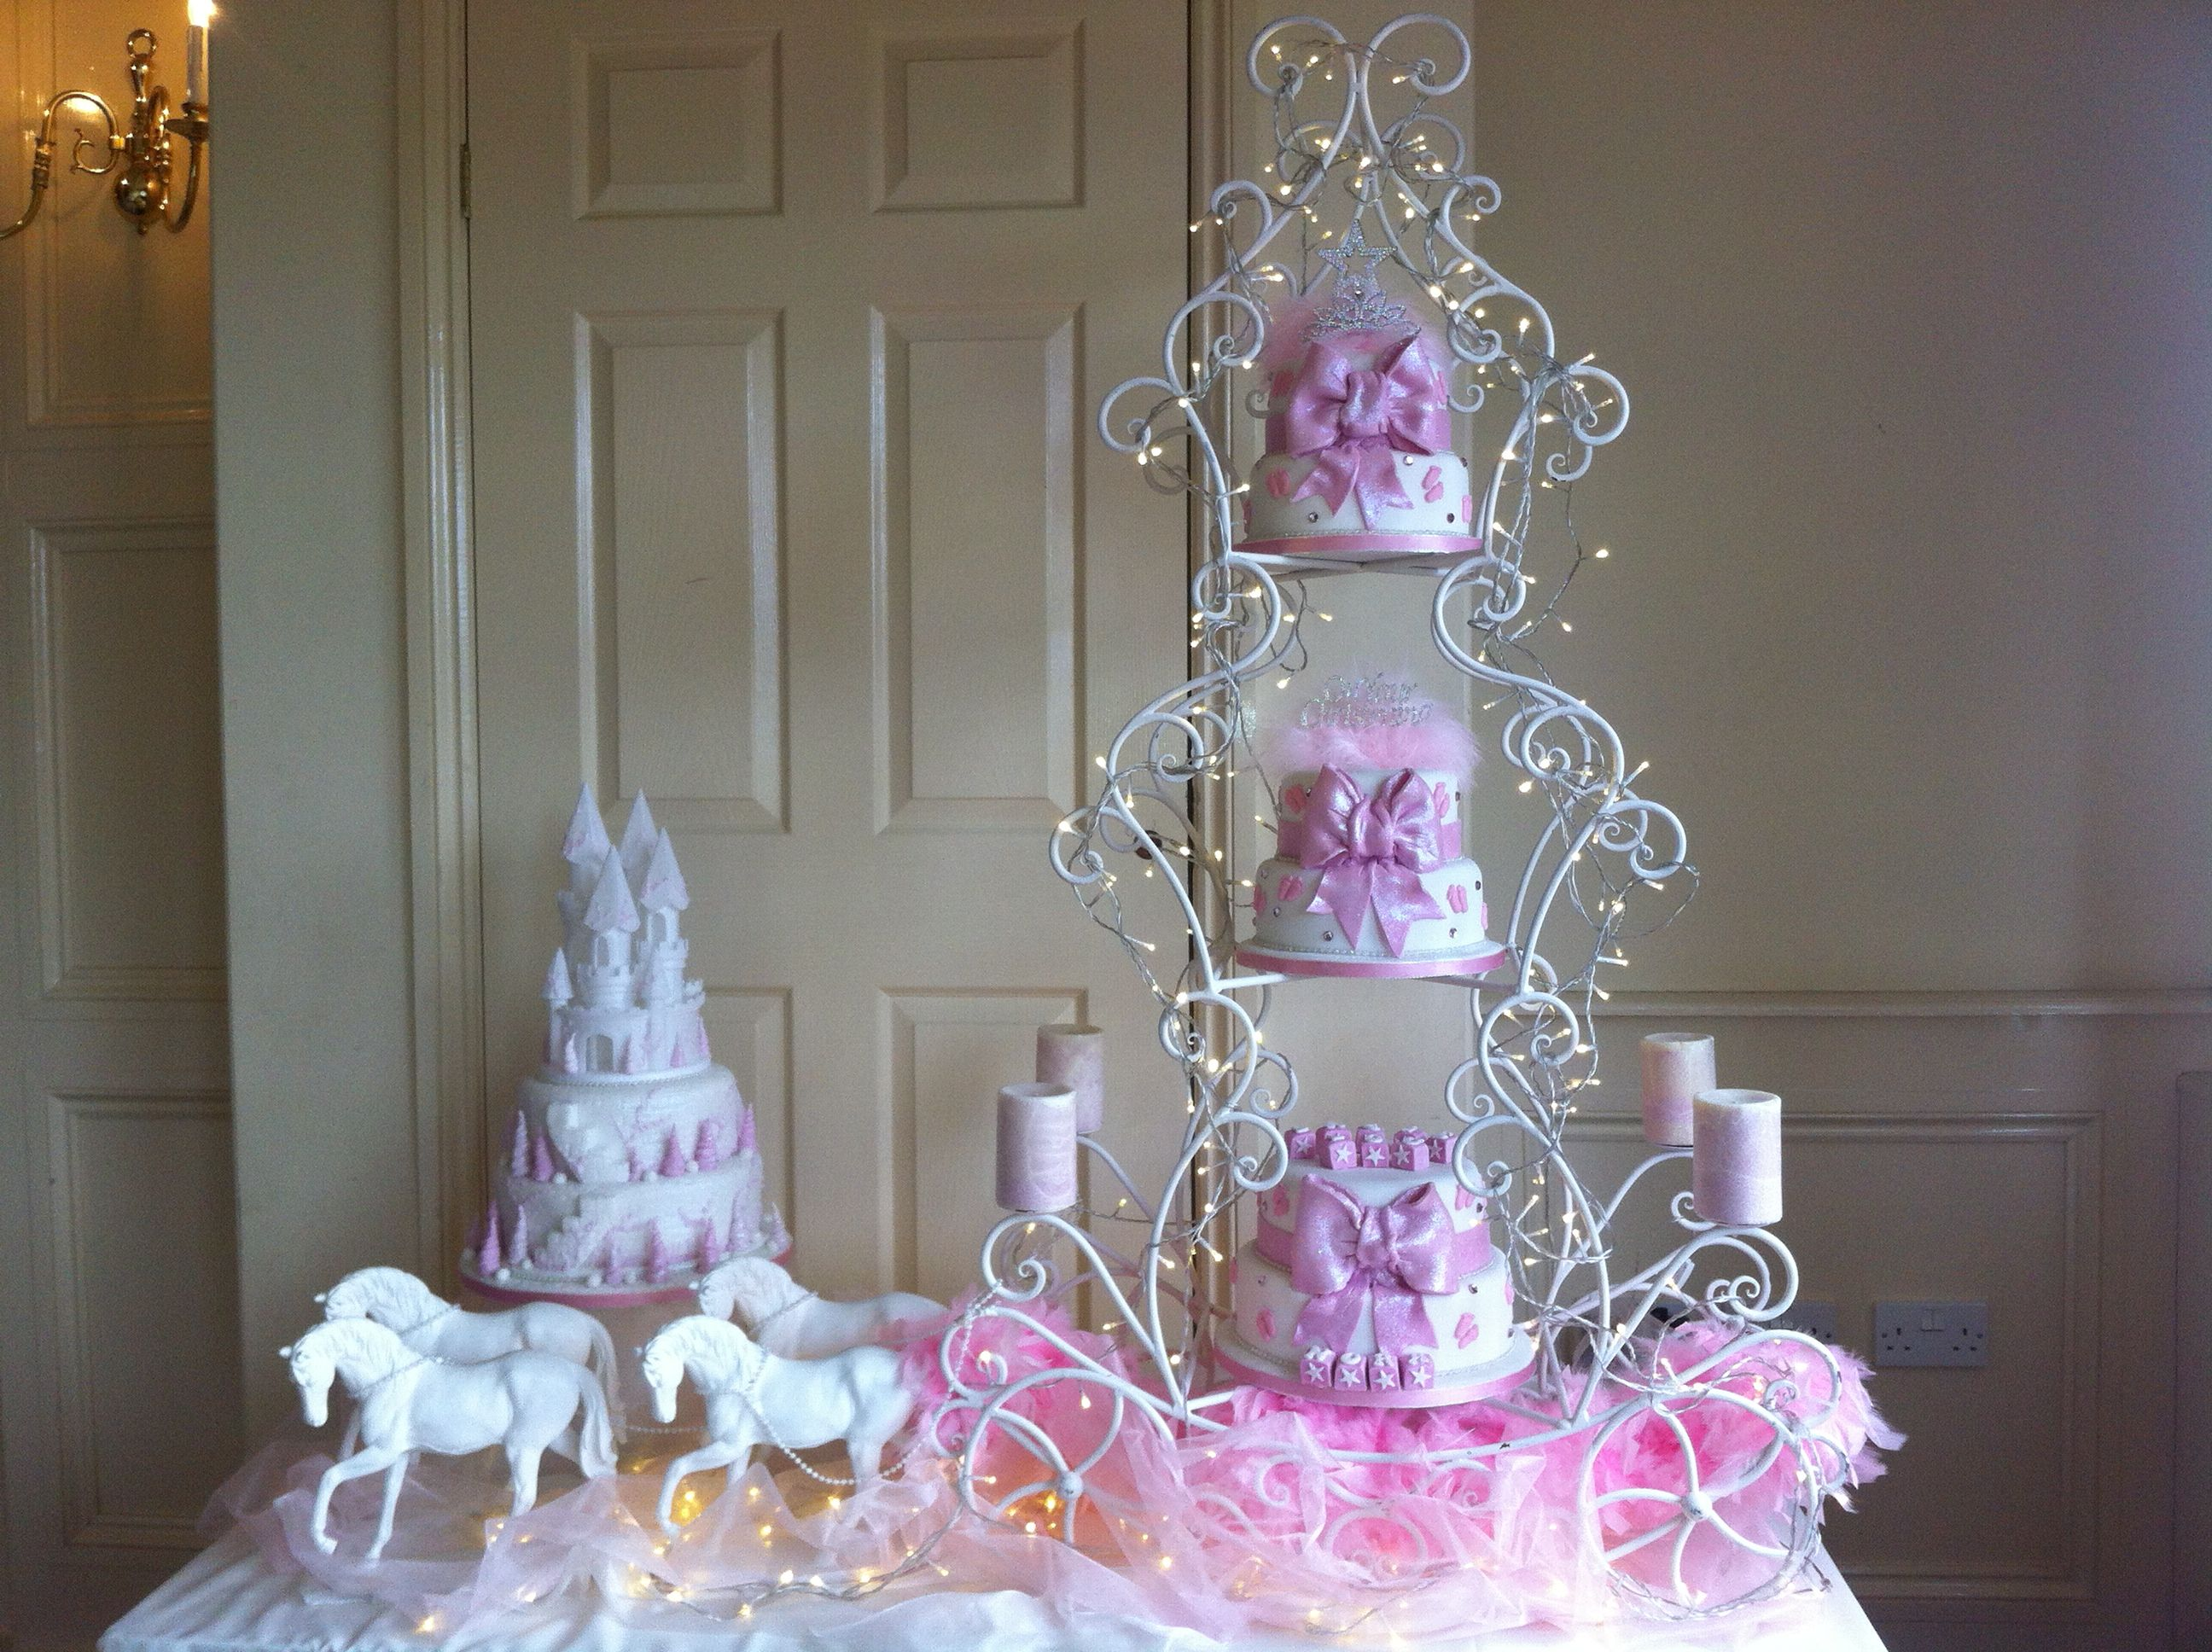 Huge 8 tier pink christening cake on our unique horse and carriage cake stand!